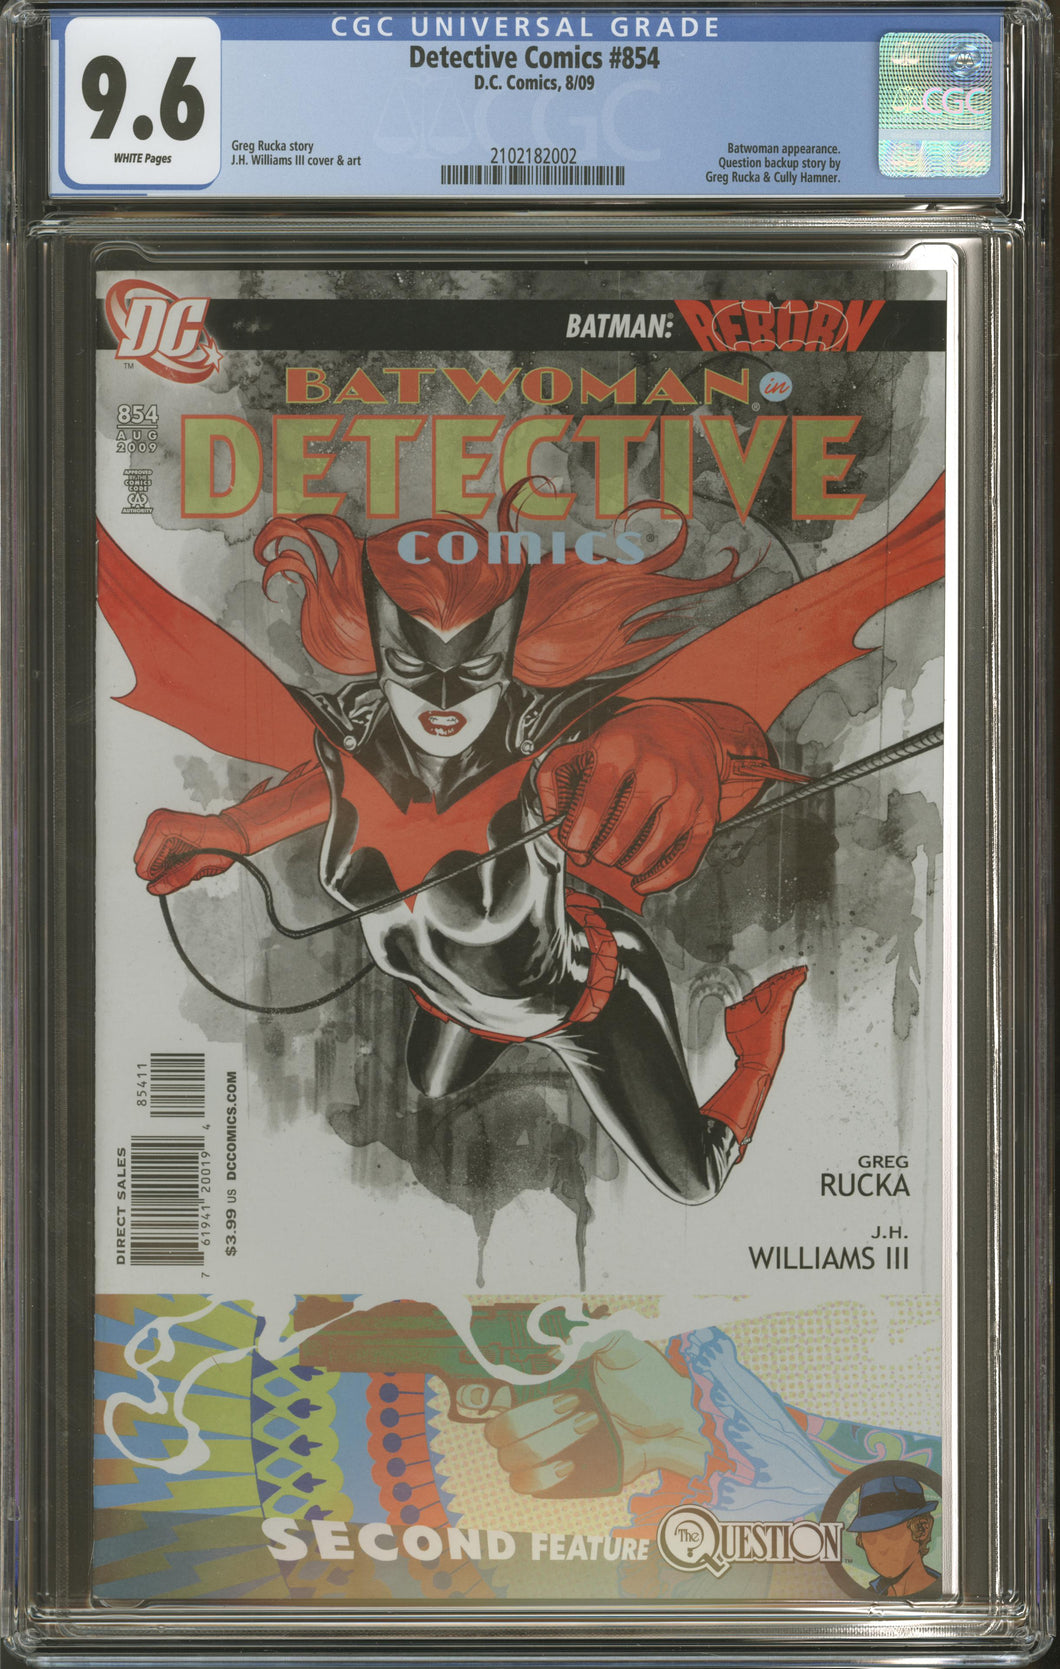 DETECTIVE COMICS #854 (2009 DC Comics) CGC 9.6 NM+ JH Williams III Batwoman